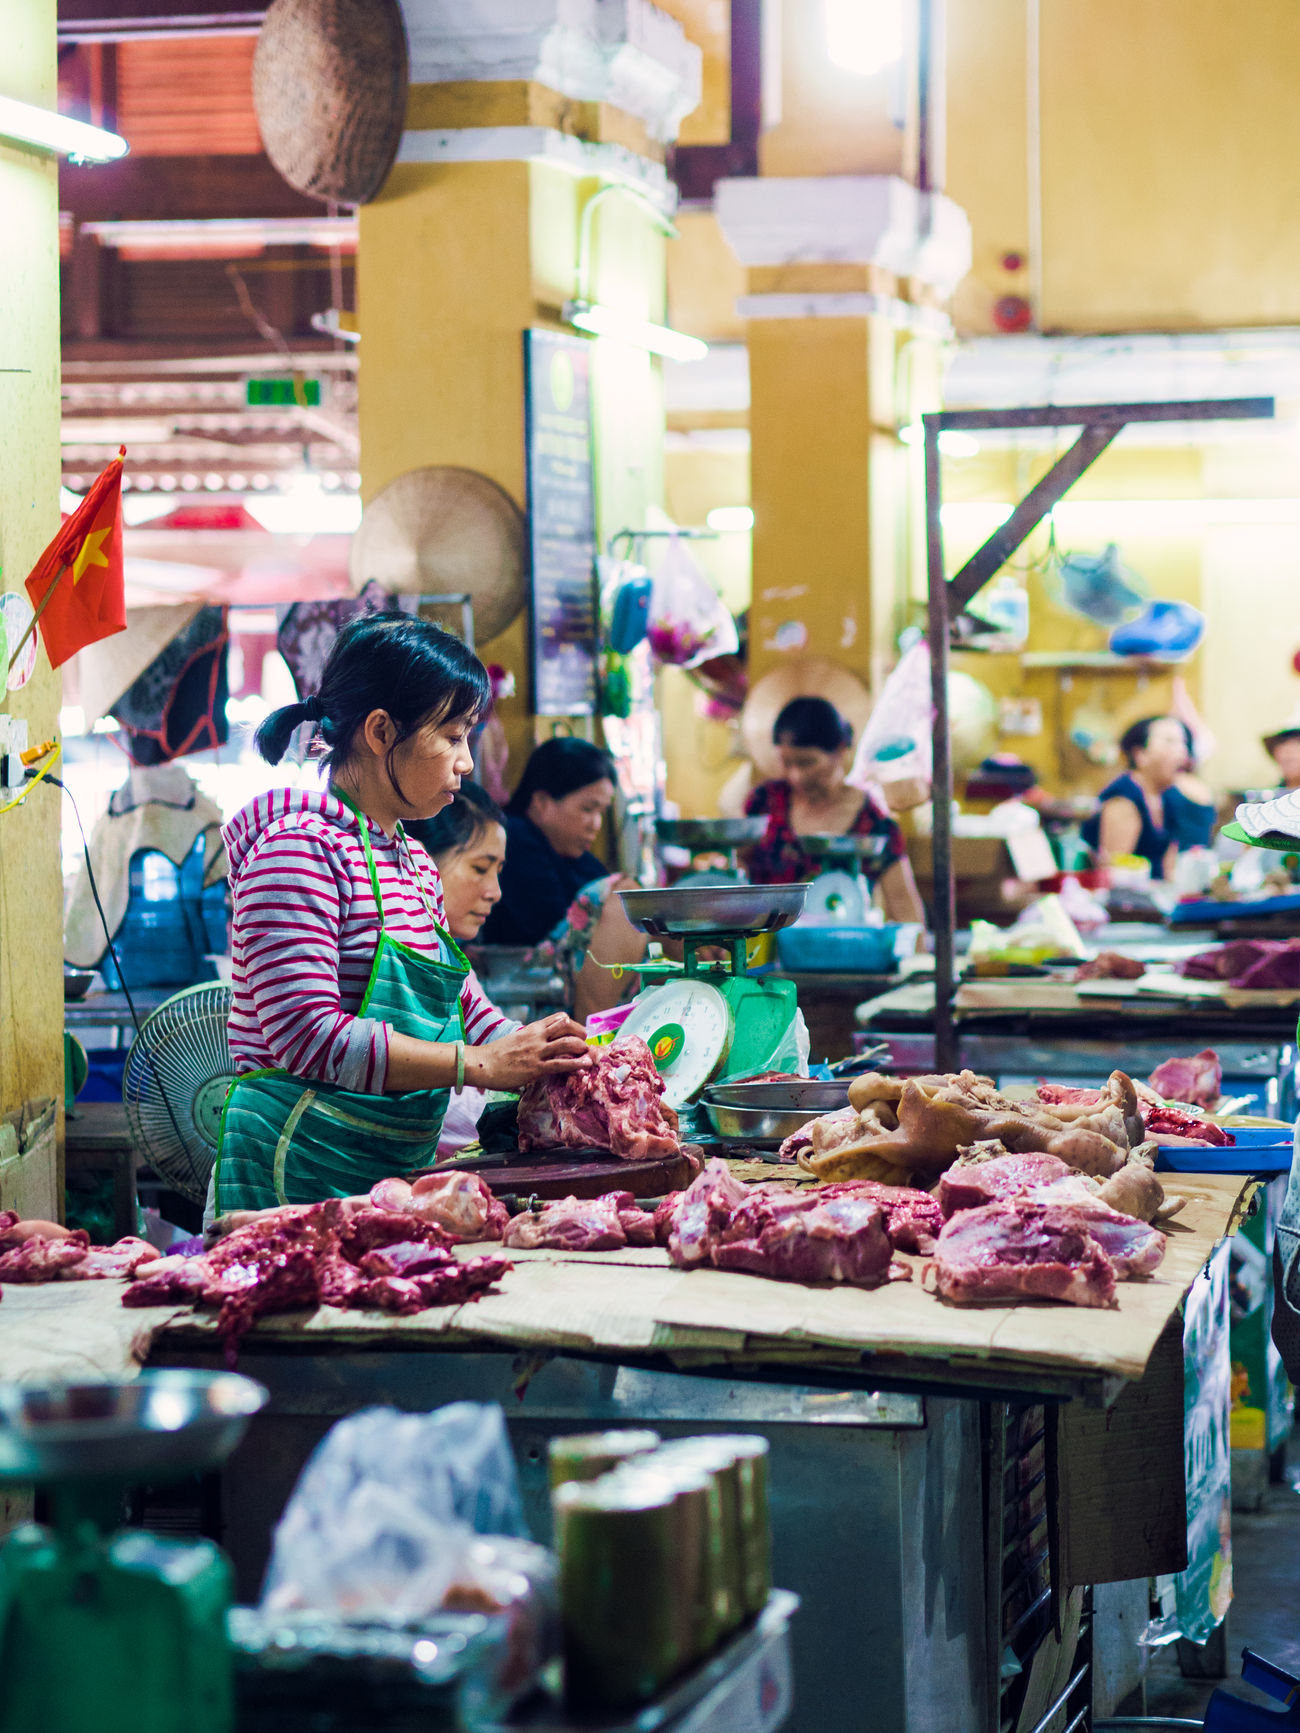 Adult Adults Only Business Business Finance And Industry Butcher Butchers Buying Customer  Day Food Food And Drink Freshness Hoi An Holiday - Event Market Occupation Outdoors People Retail  Small Business Store Vietnam Women Young Adult